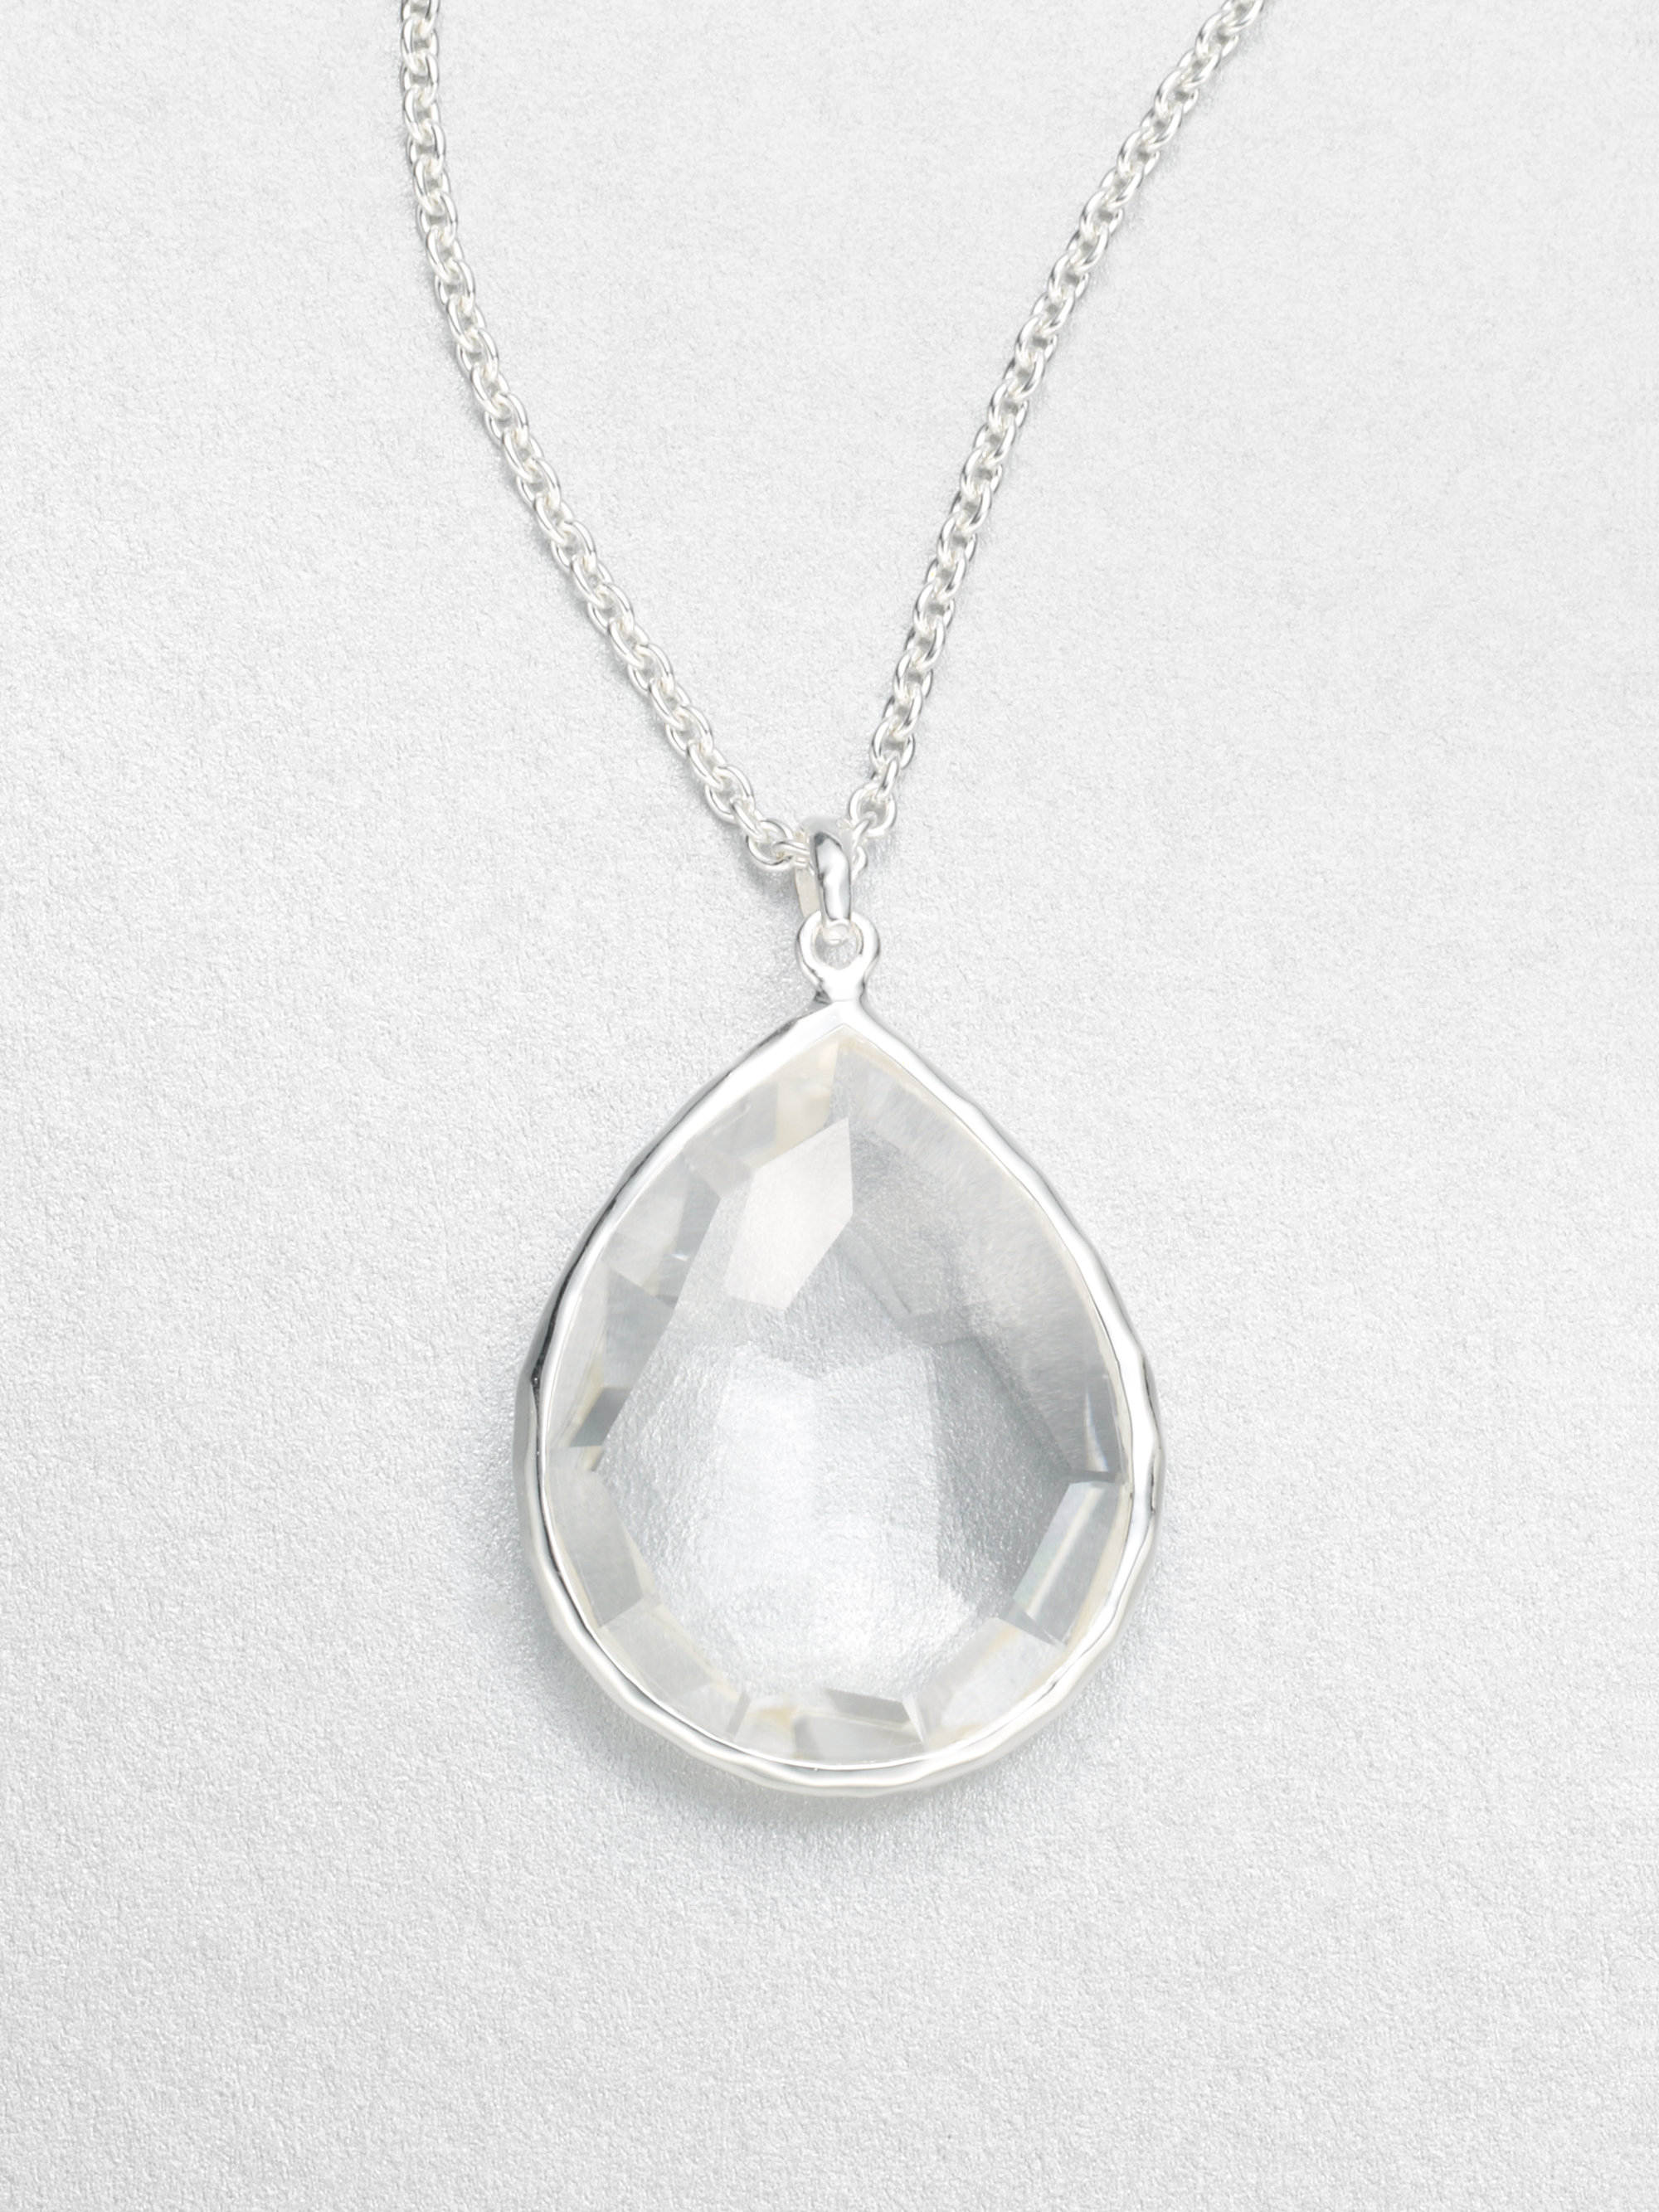 large quartz product clear lyst pendant ippolita teardrop necklace sterling crystal jewelry silver gallery